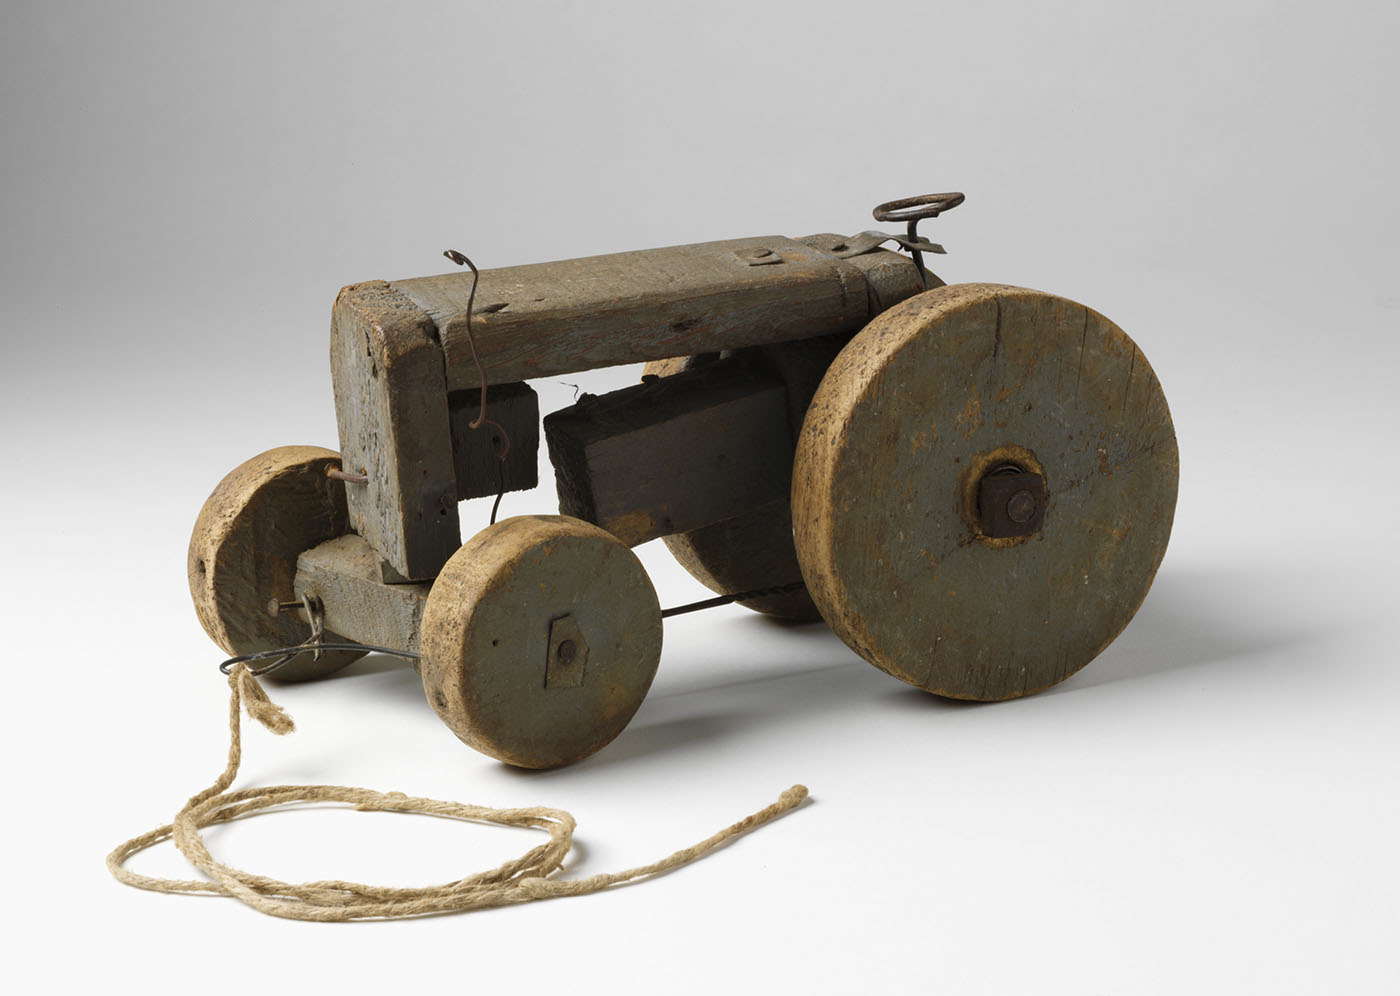 Toy wooden tractor constructed from timber and wire with two larges wheels at the rear and two small wheels at the front.